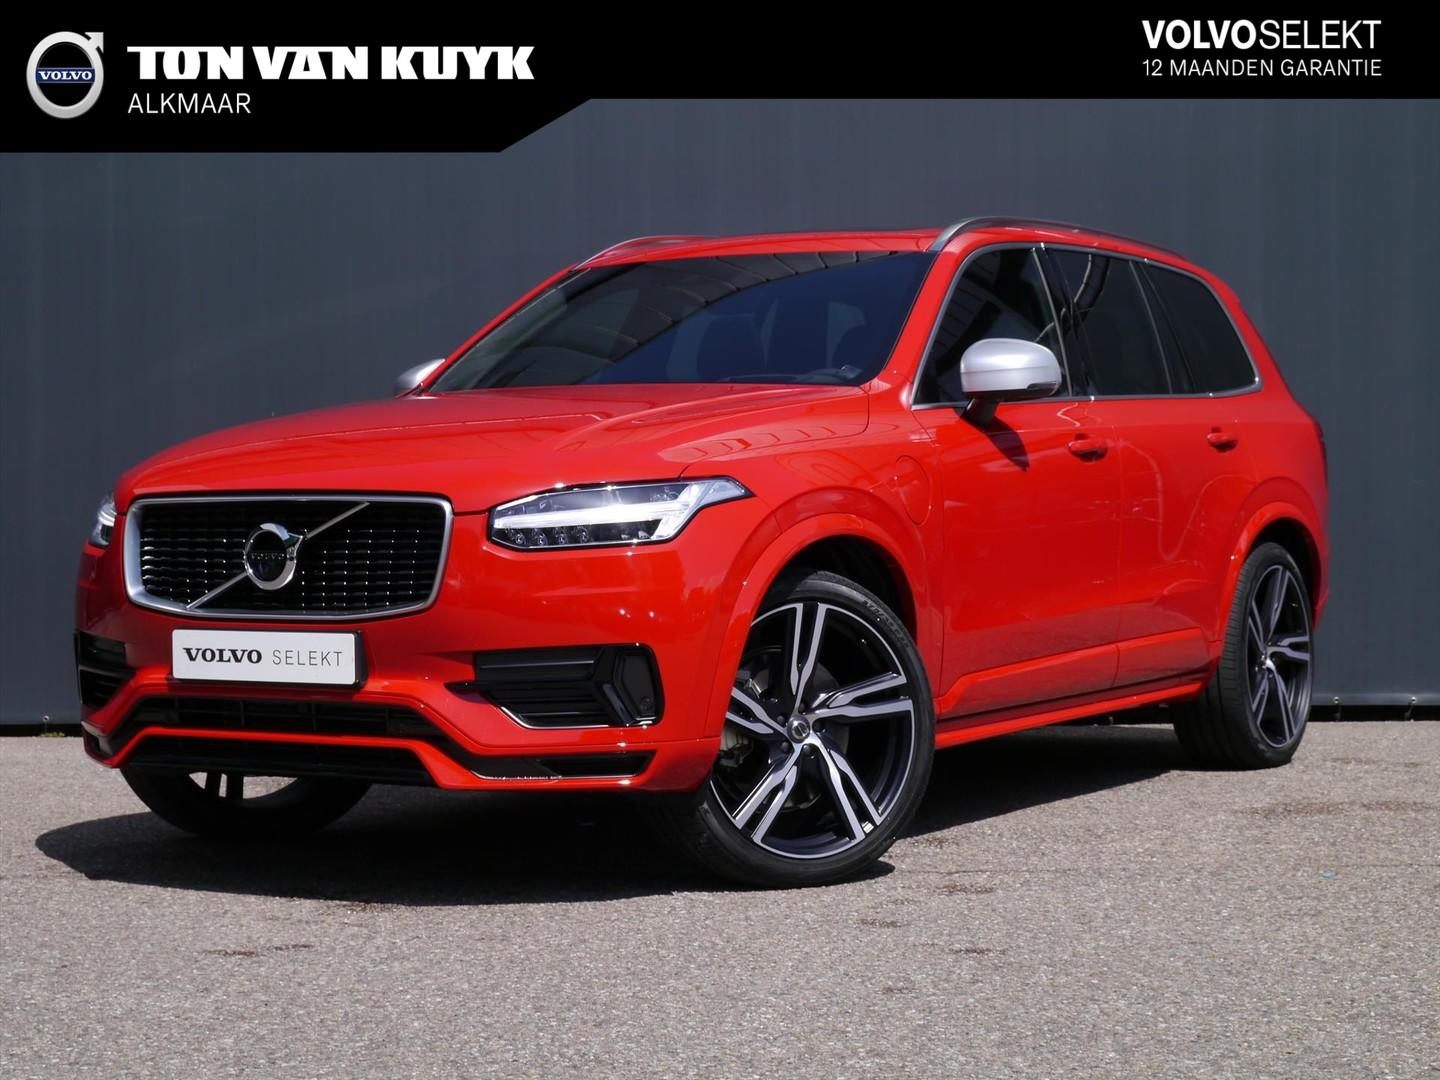 "Volvo Xc90 T8 twin engine r-design / passion red / 22"" / led"